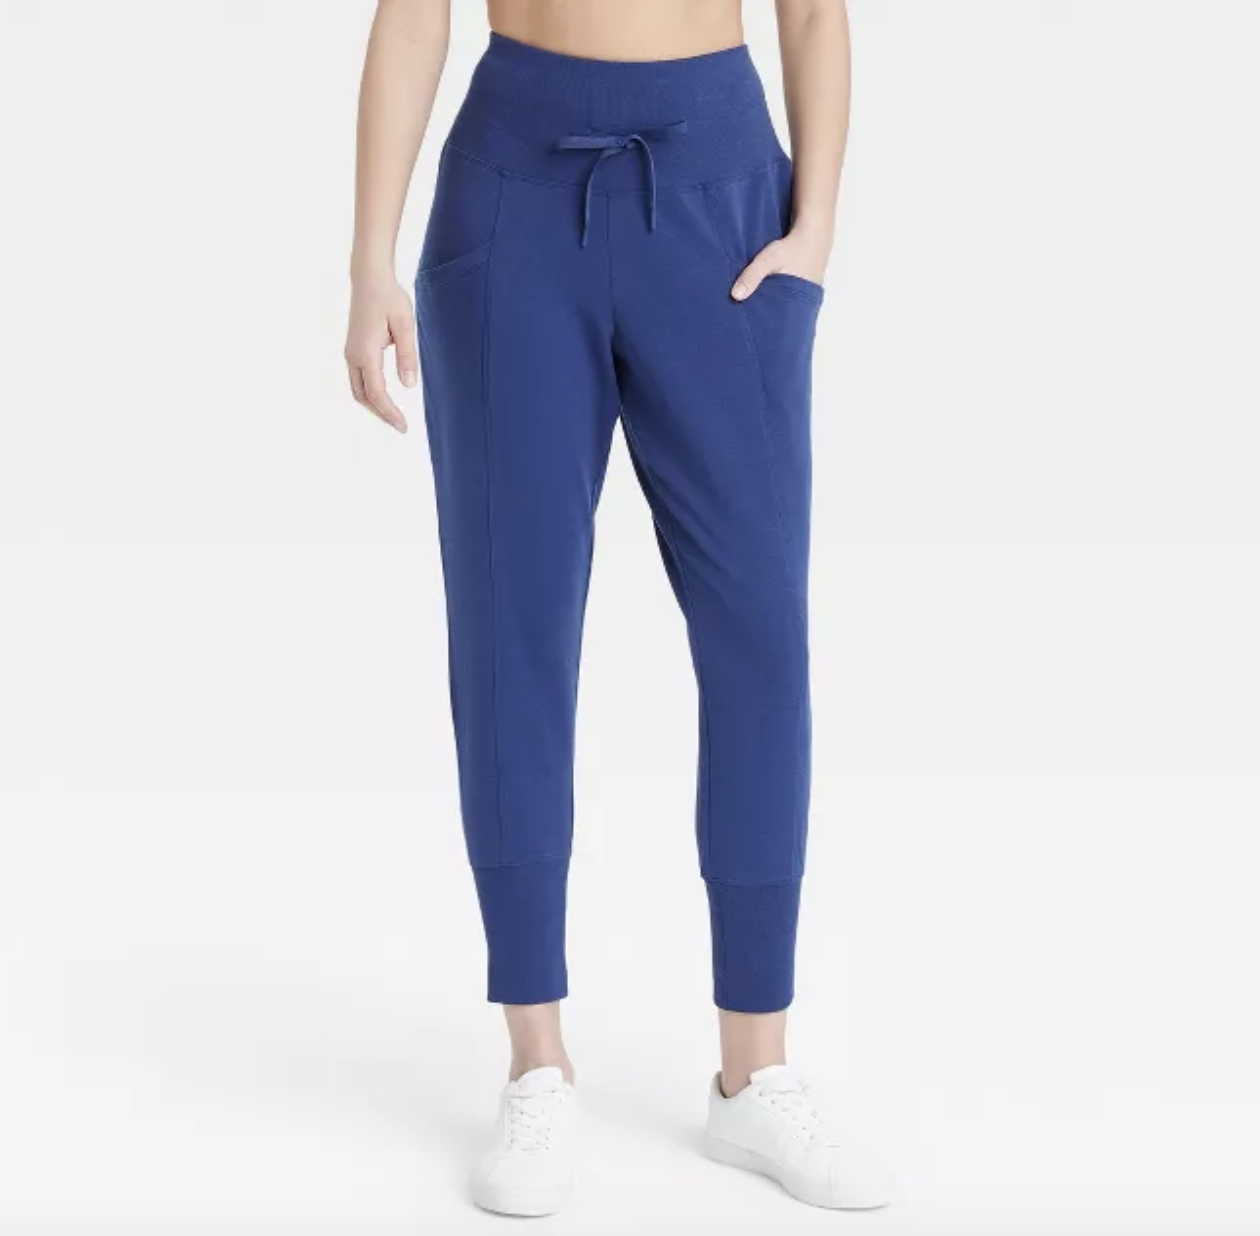 model wearing the royal blue high waisted joggers